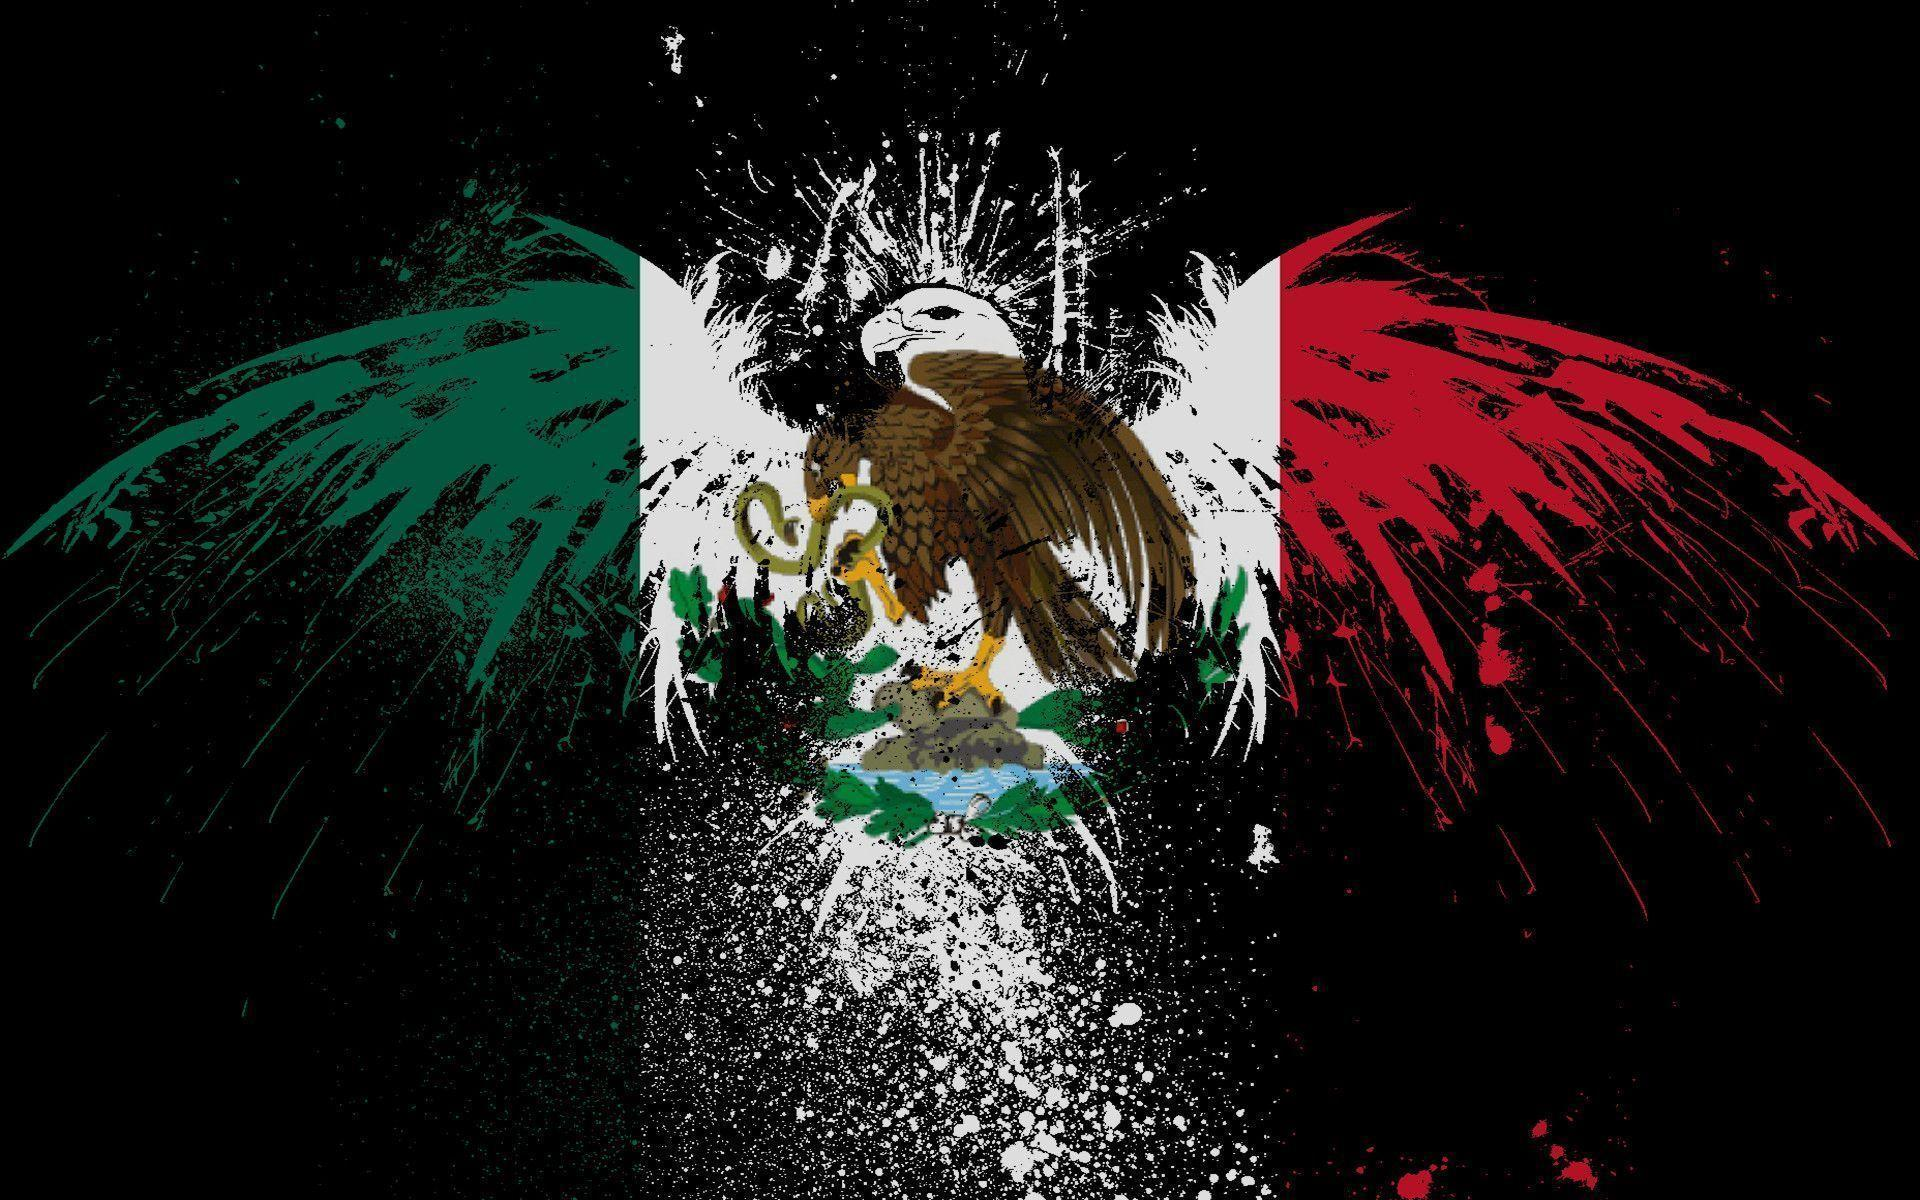 show me a picture of mexico